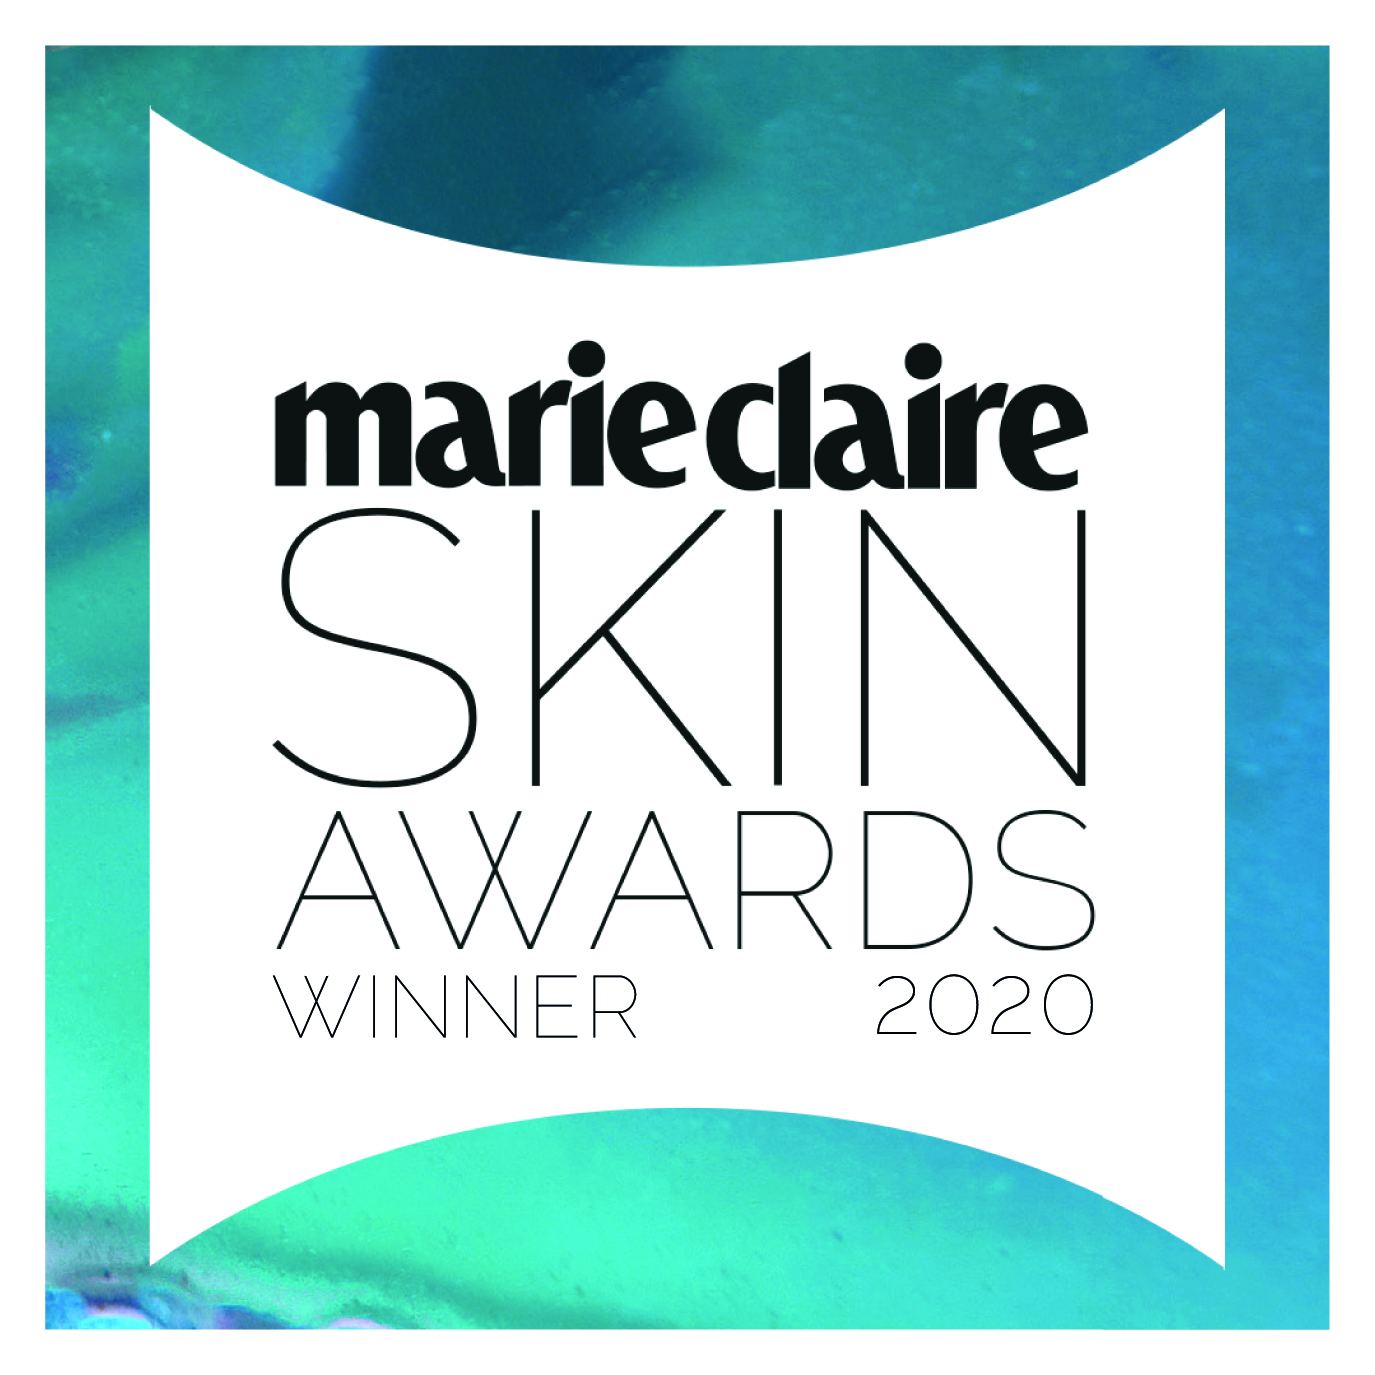 MARIE CLAIRE SKIN AWARDS 2020